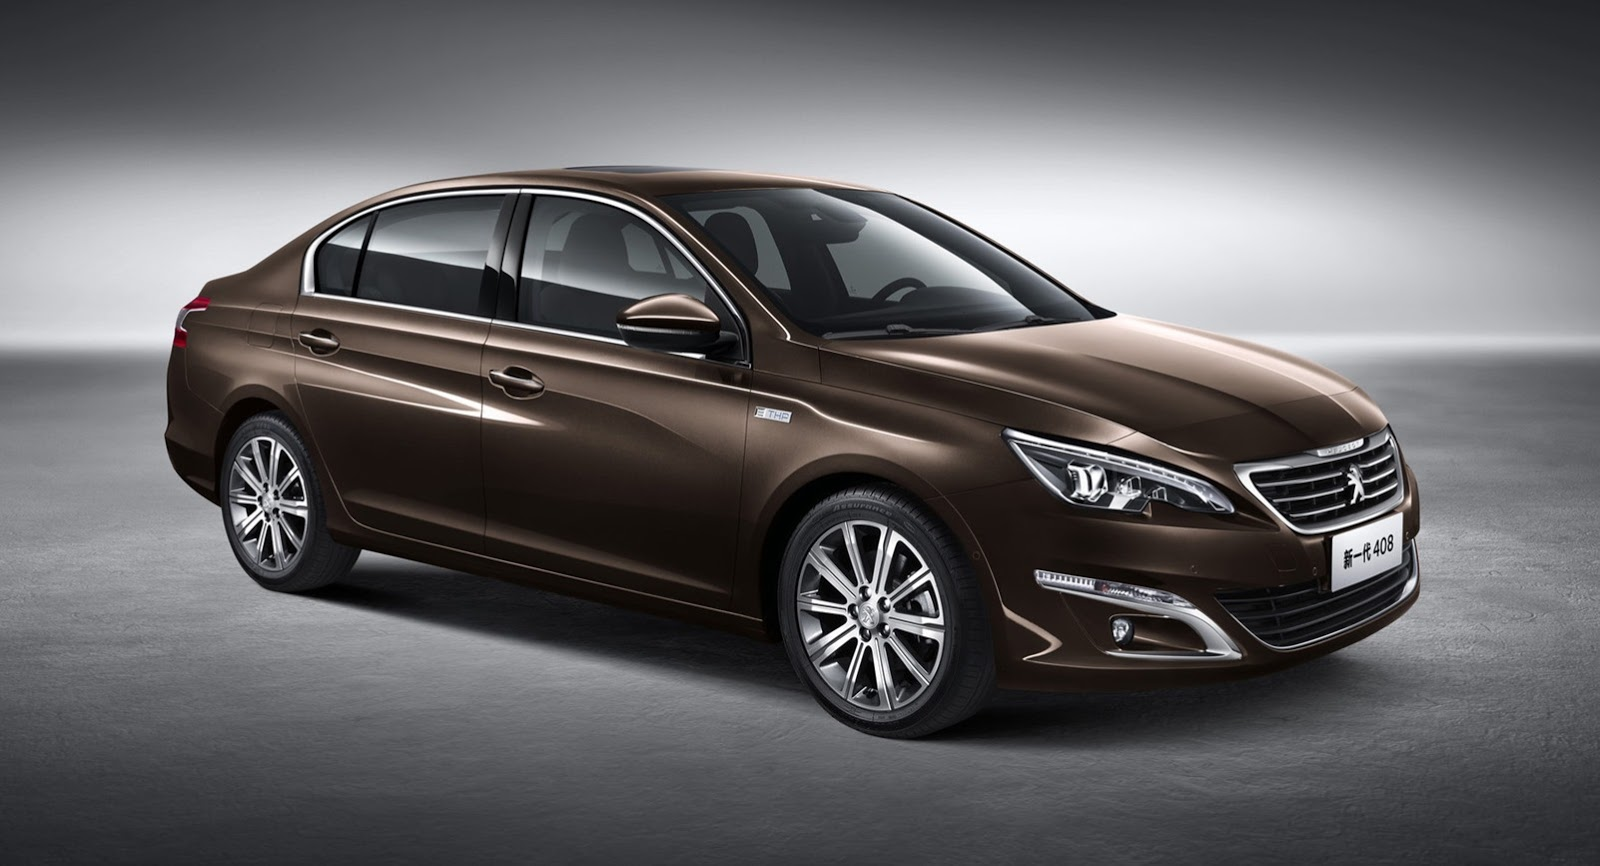 Ford Focus Sport >> All-New Peugeot 408 Sedan Revealed in China, Is a Longer 308 With a Boot - autoevolution